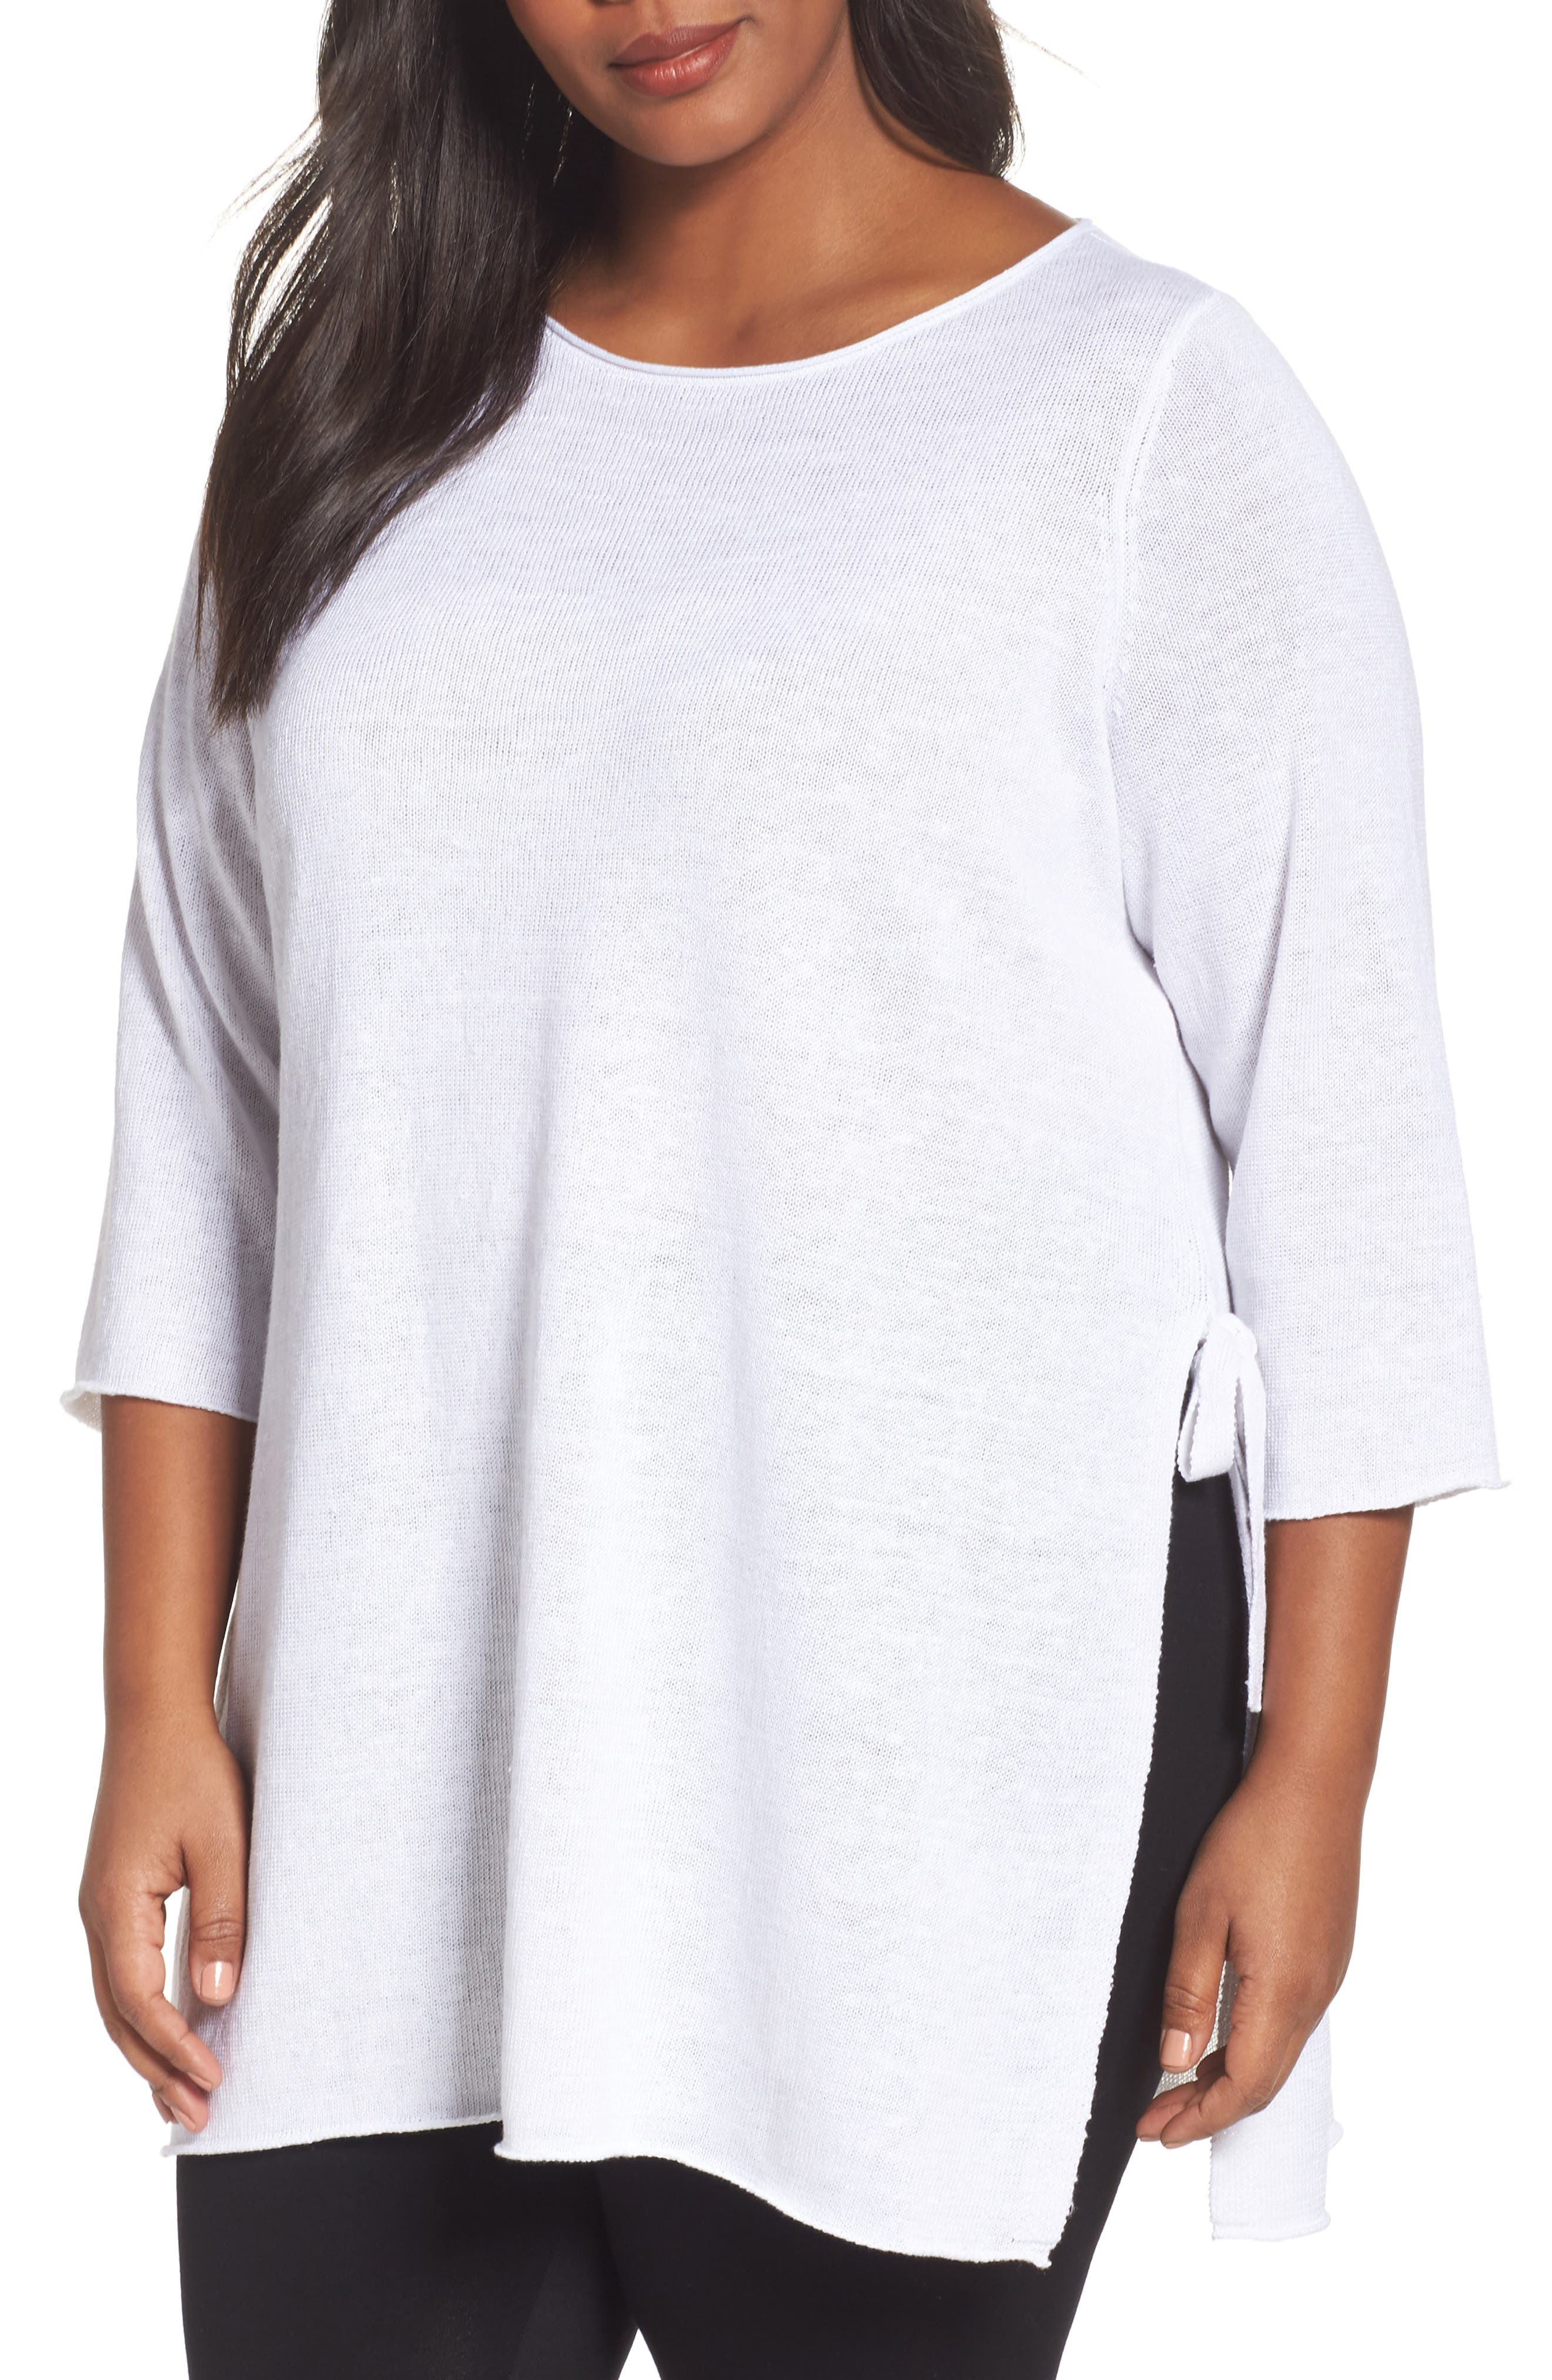 Main Image - Eileen Fisher Side Tie Organic Linen Sweater (Plus Size)